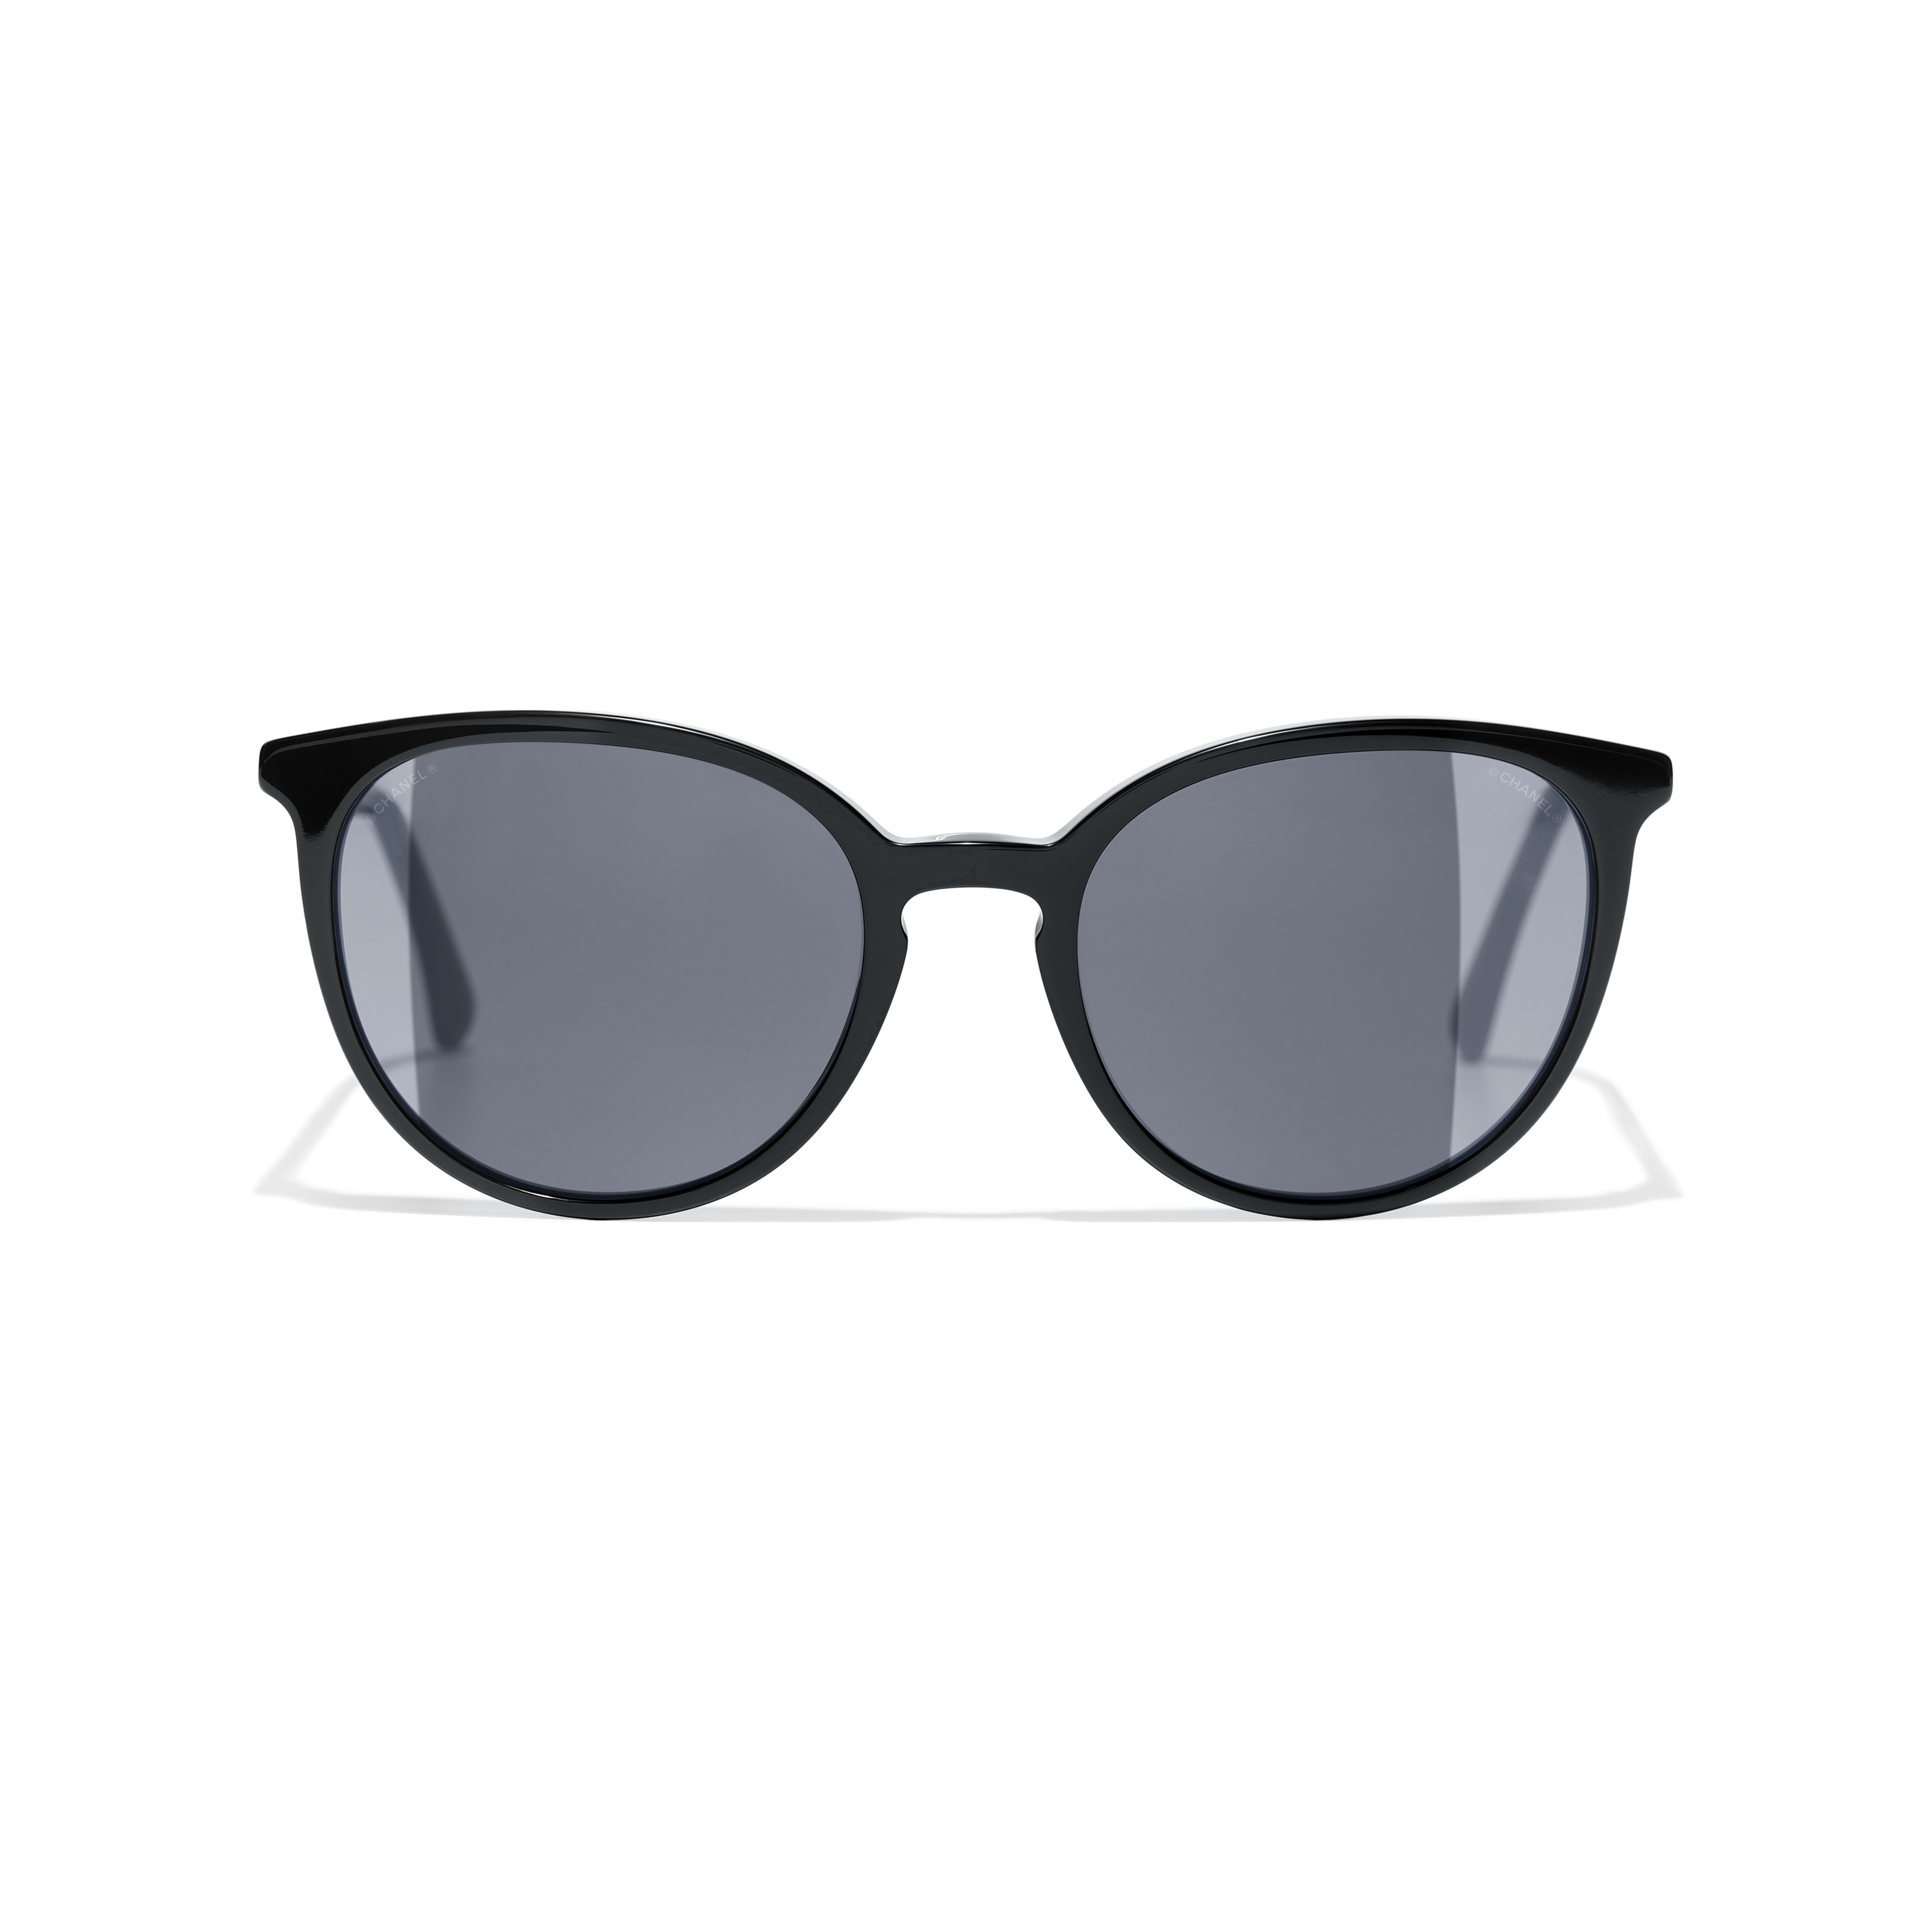 Butterfly Sunglasses - Black - Acetate & Imitation Pearls - Alternative view - see full sized version